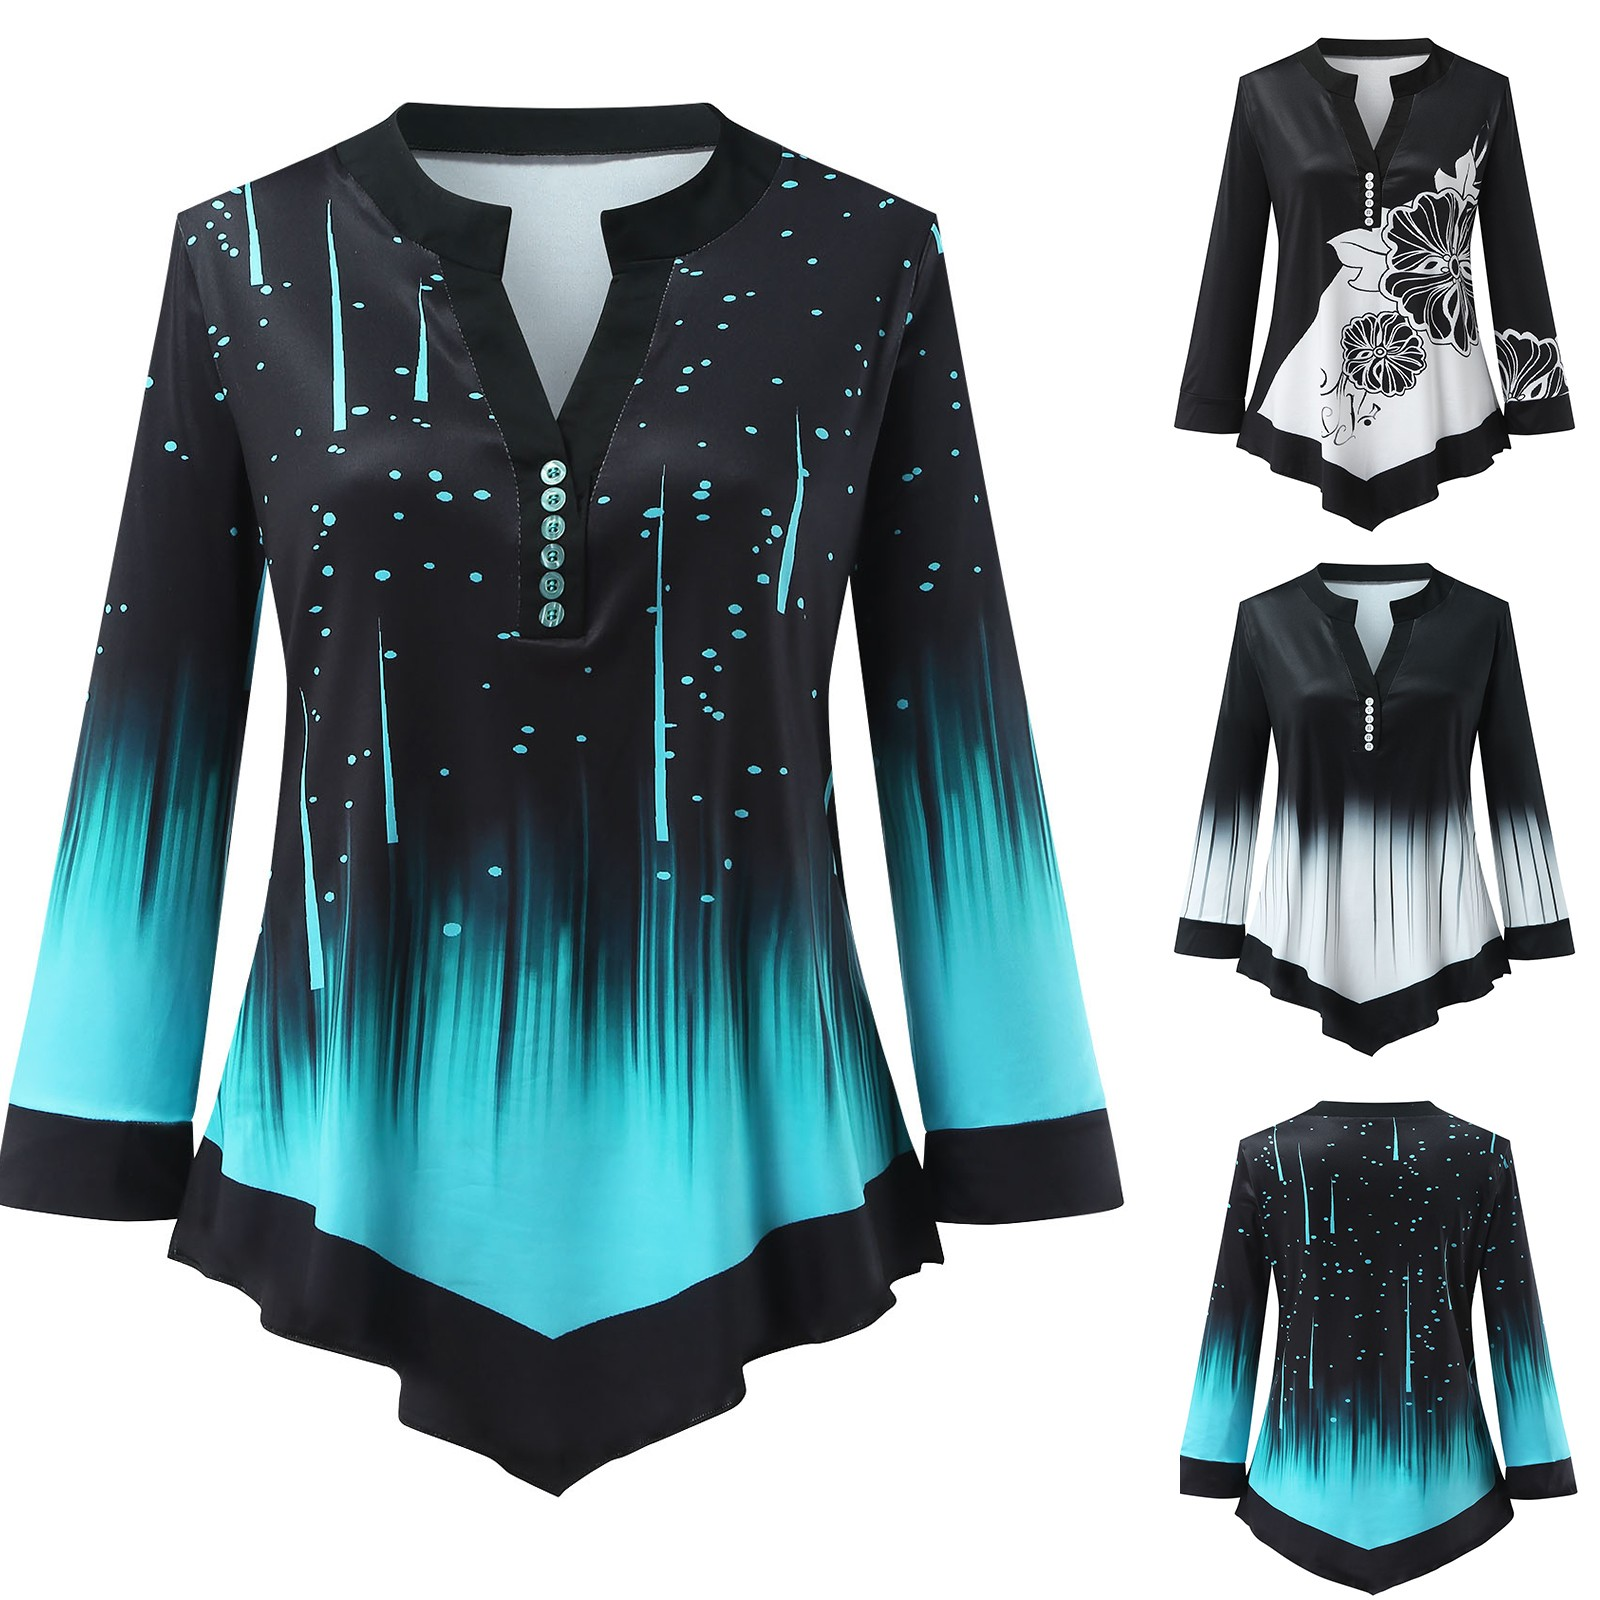 Plus Size Gradient Patchwork Printing Blouse Loose V neck Button Tunic Shirt Sexy Long Sleeve Blouses Casual Top Рубашка Женская